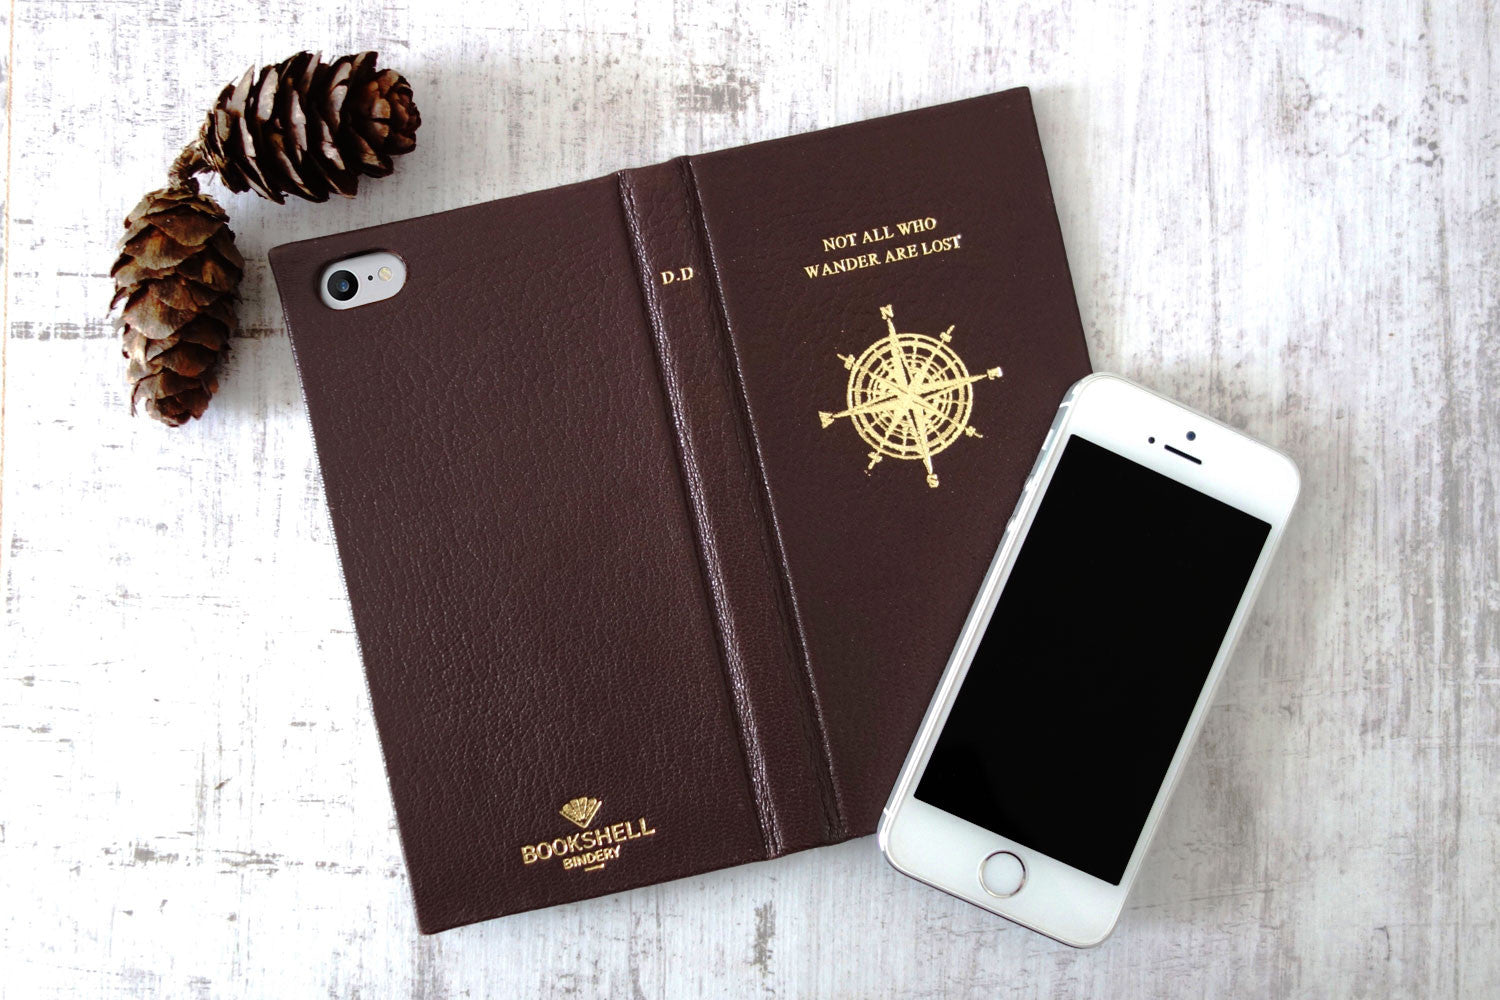 Leather iphone case from Bookshell in brown with compass cover picture embossed in gold foil